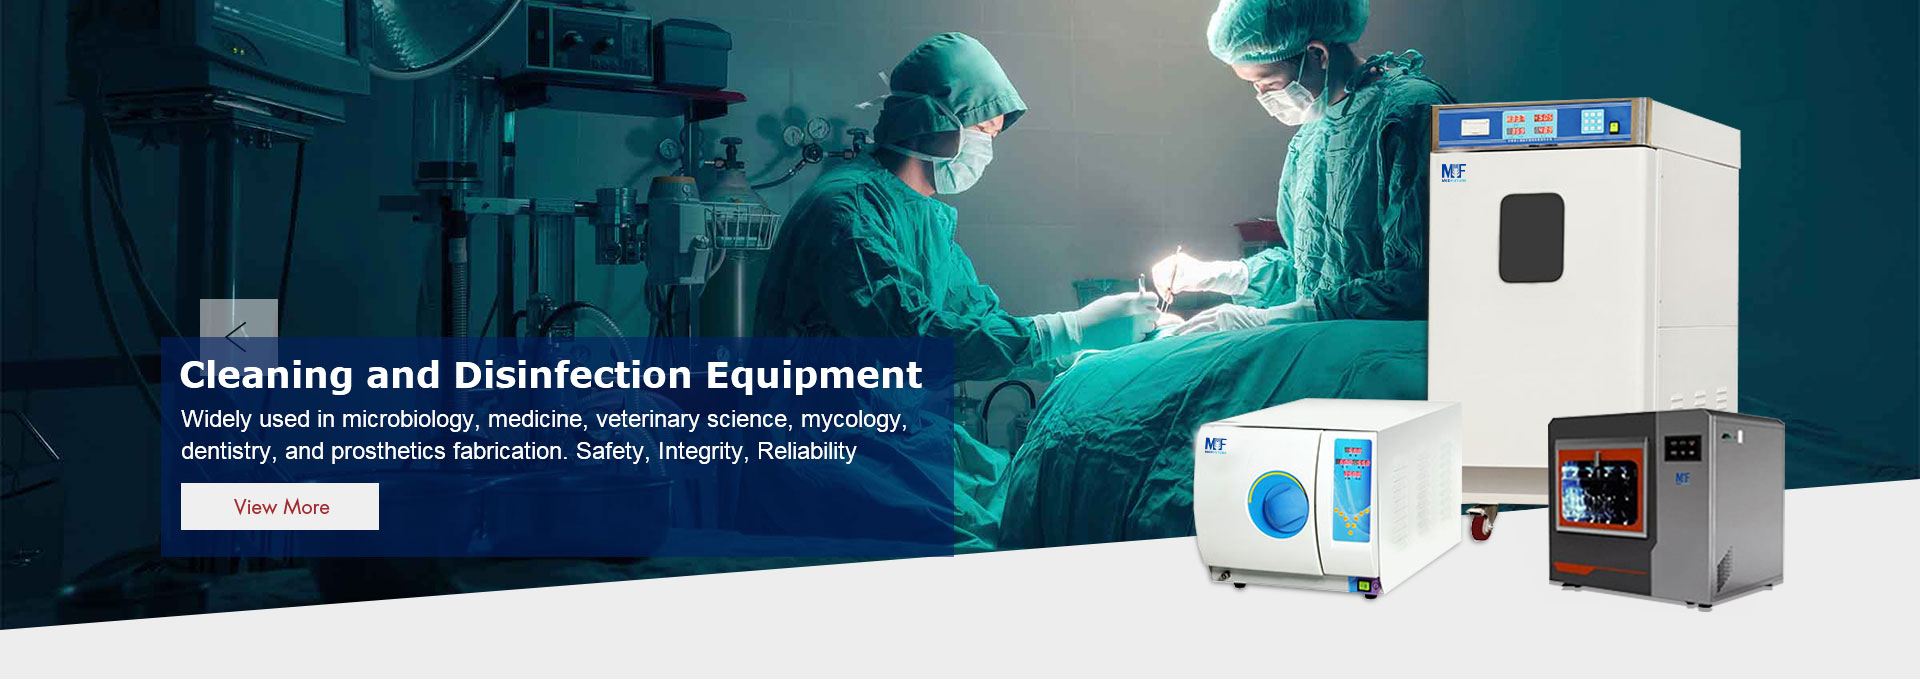 Cleaning and Disinfection Equipment